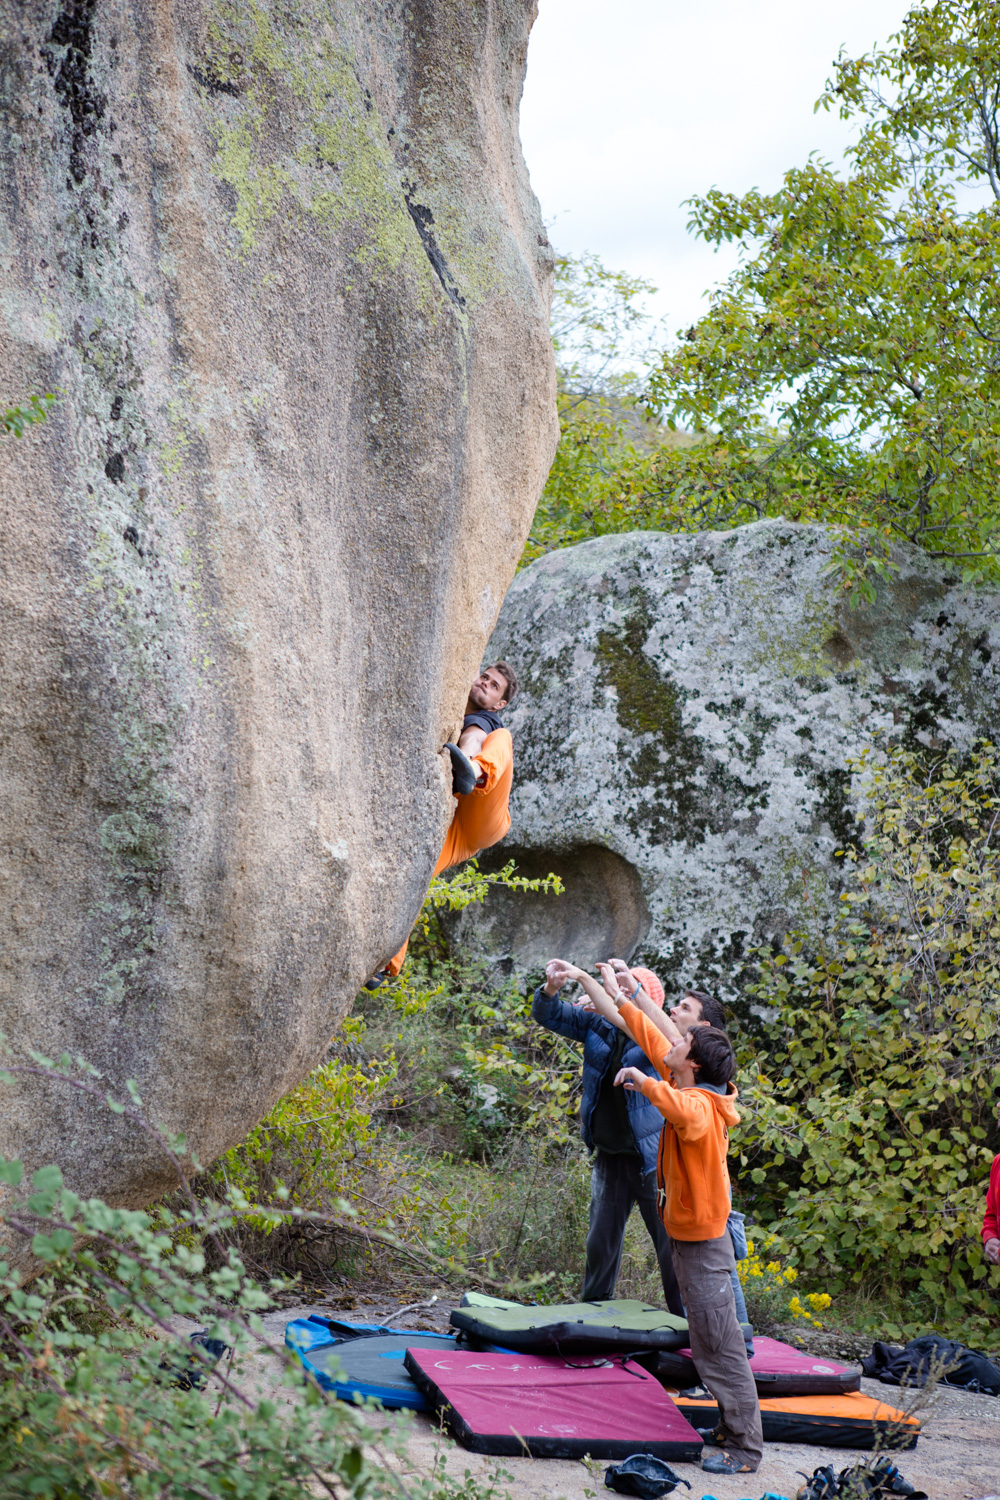 Try hard face in Prilep Macedonia during the Petzl Roc Trip.